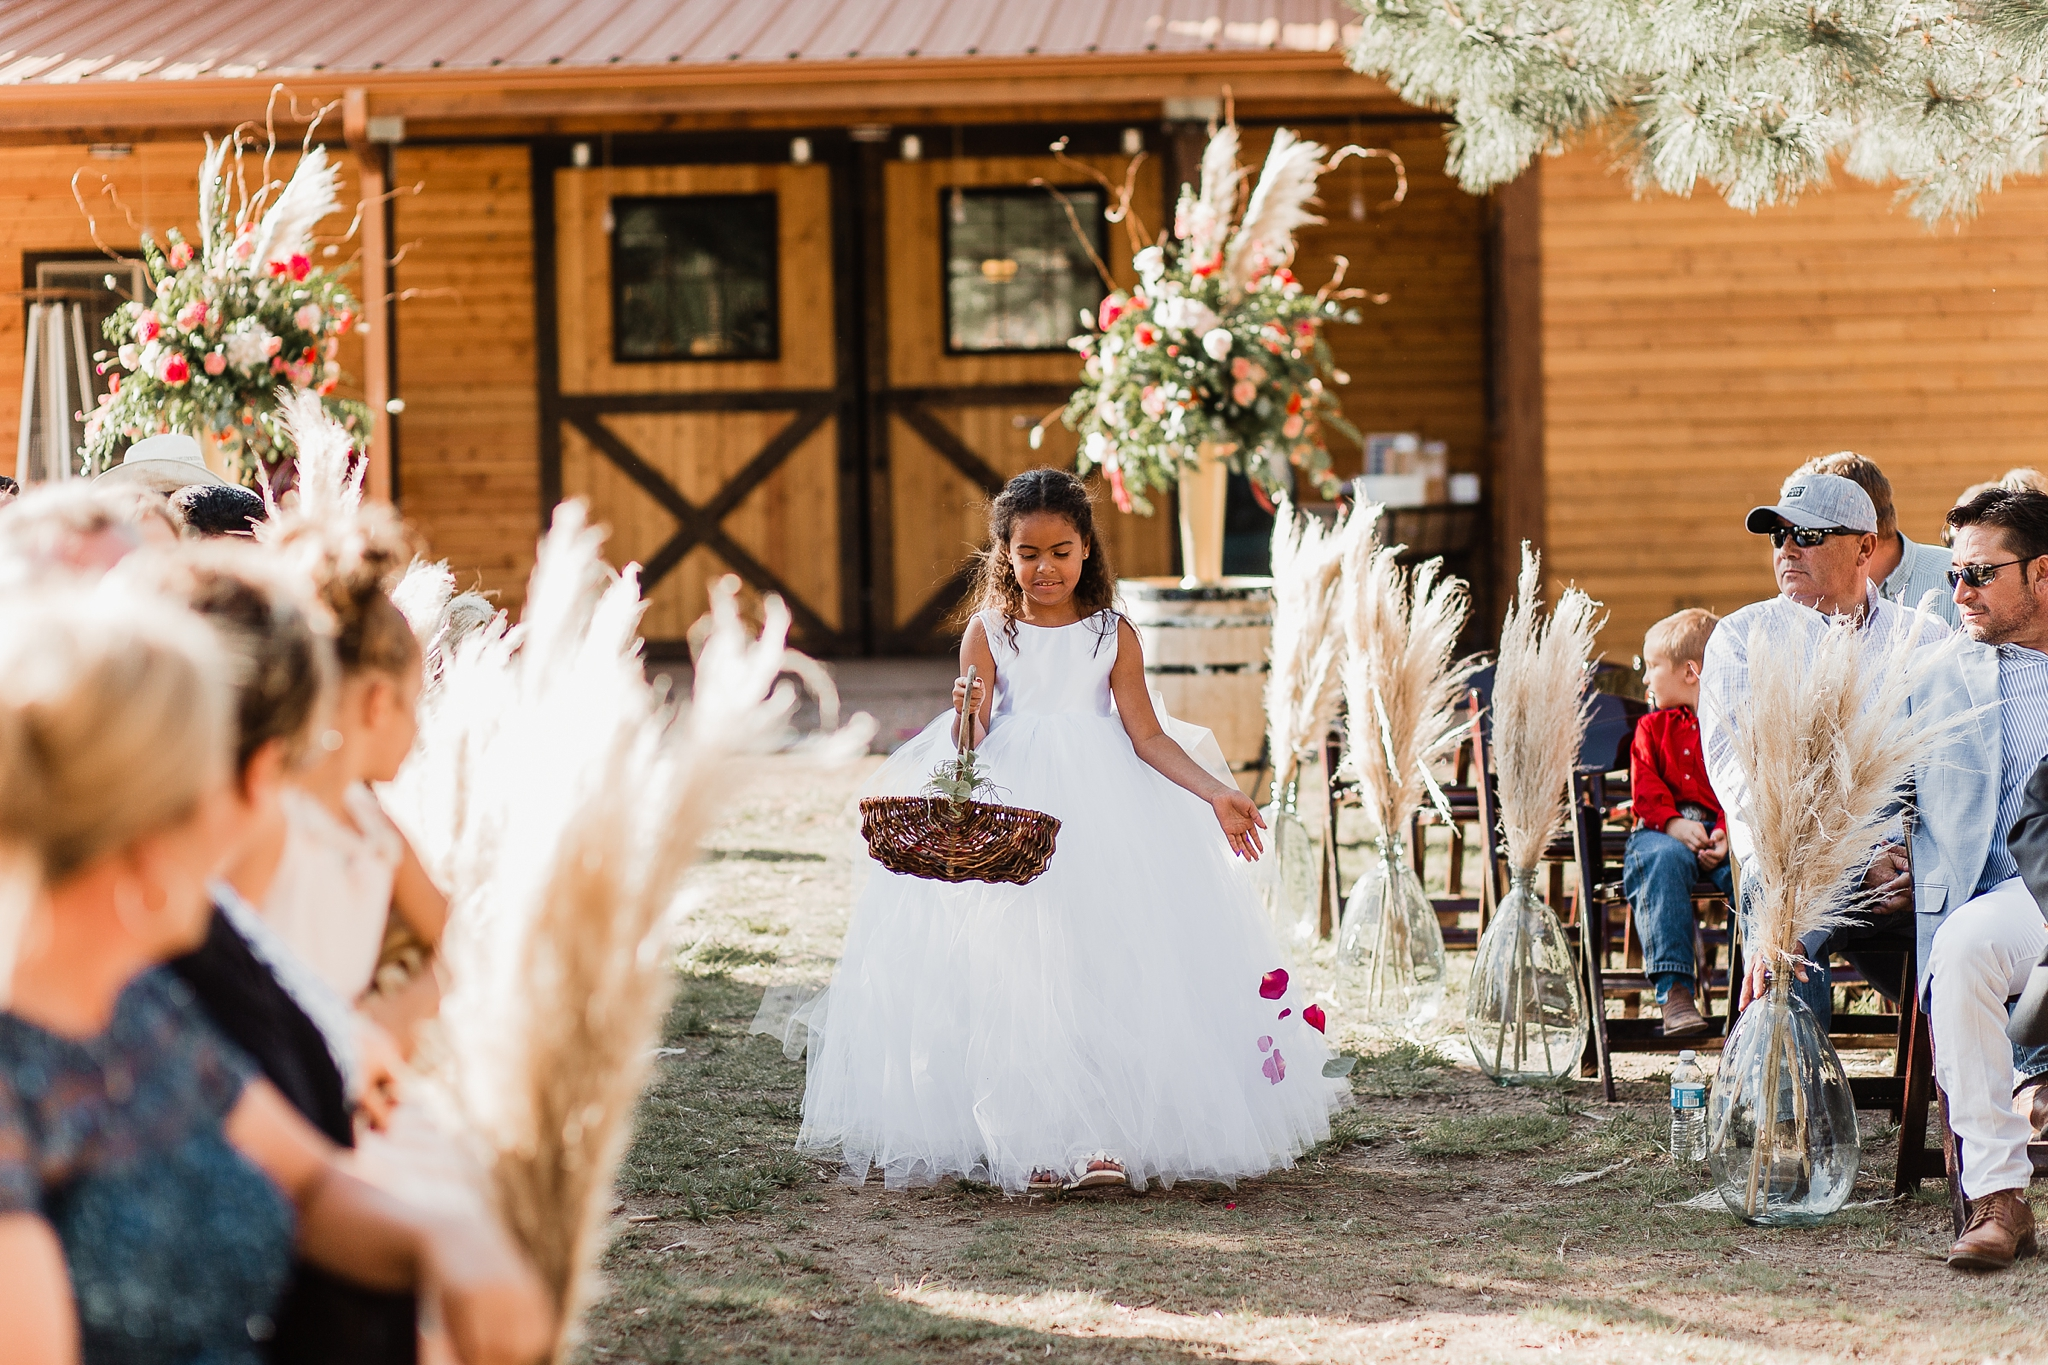 Alicia+lucia+photography+-+albuquerque+wedding+photographer+-+santa+fe+wedding+photography+-+new+mexico+wedding+photographer+-+new+mexico+wedding+-+new+mexico+wedding+-+barn+wedding+-+enchanted+vine+barn+wedding+-+ruidoso+wedding_0089.jpg